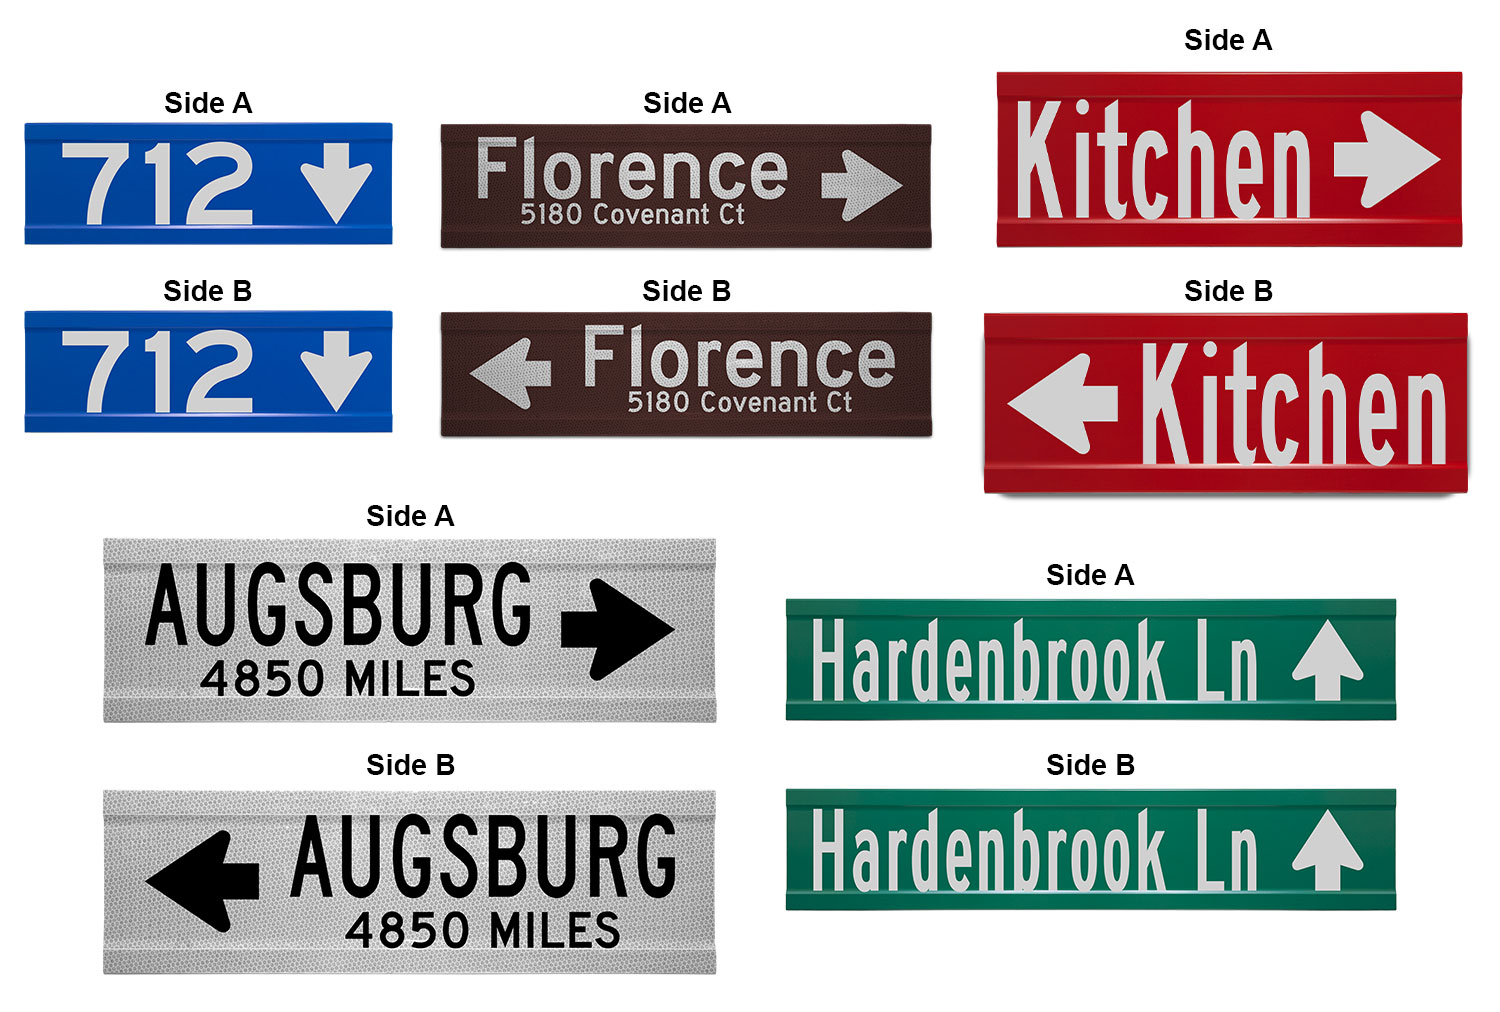 Samples of Printed Extruded Blade Signs with Directional Arrows